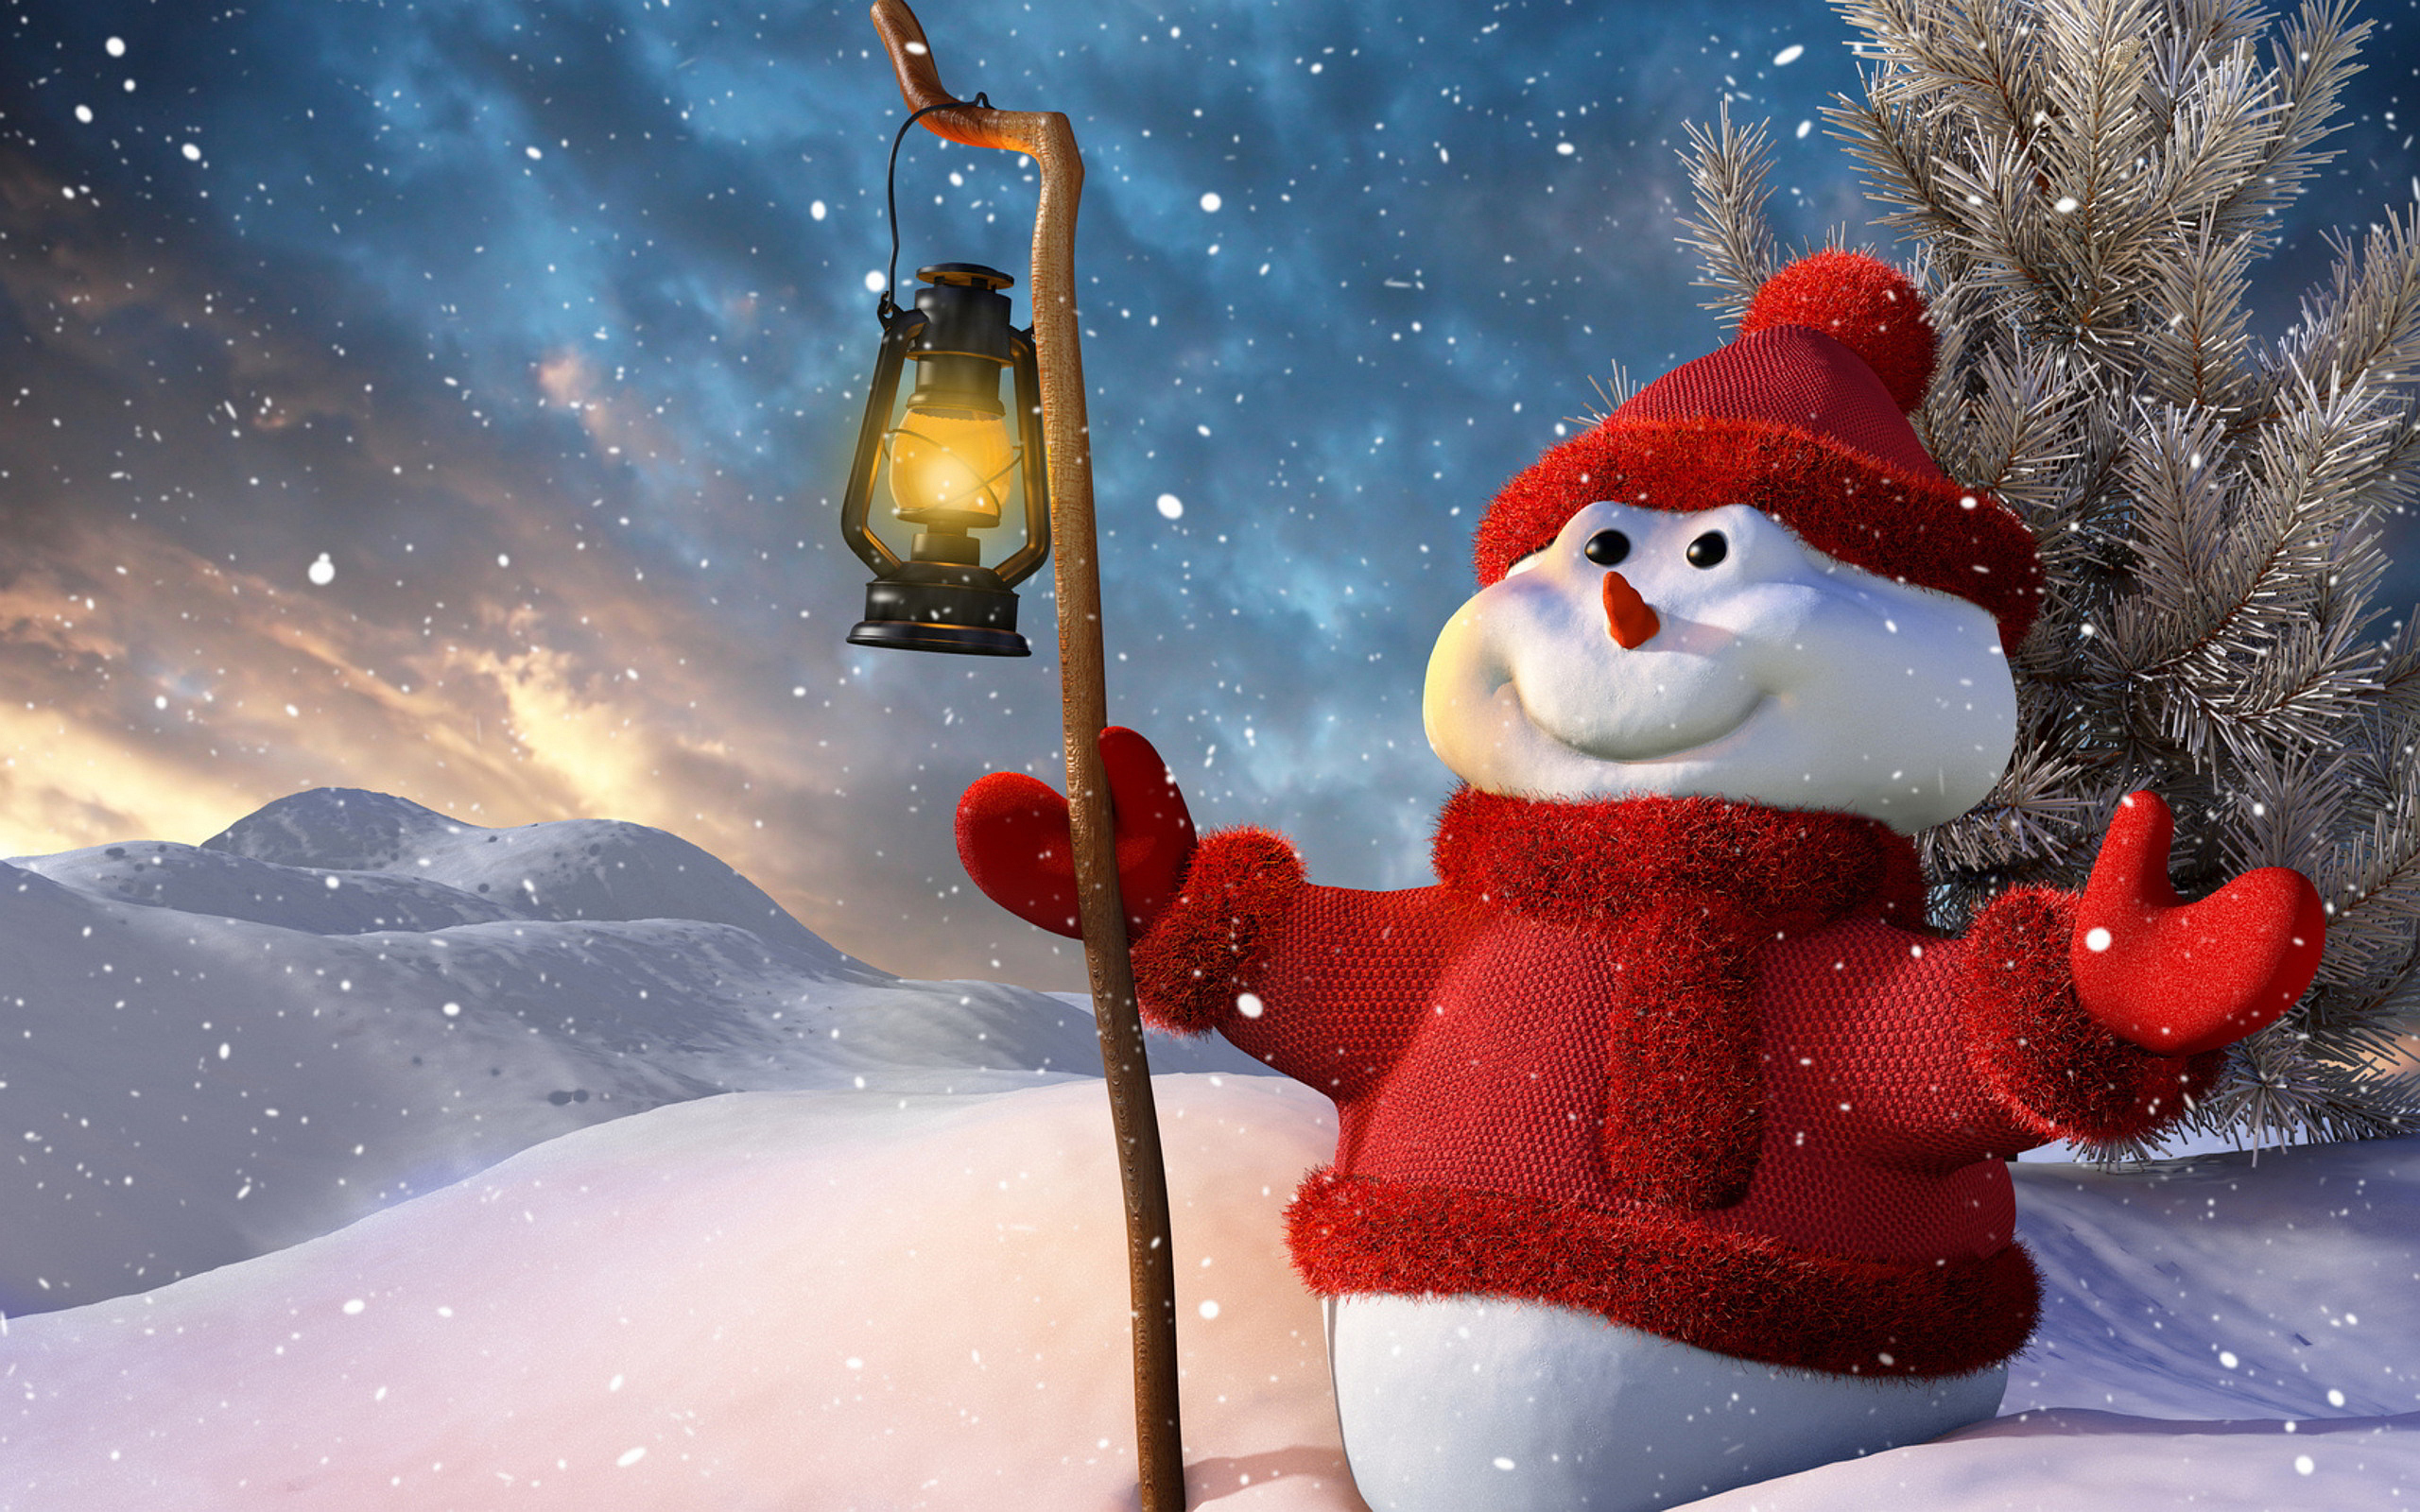 snowman wallpaper background 52517